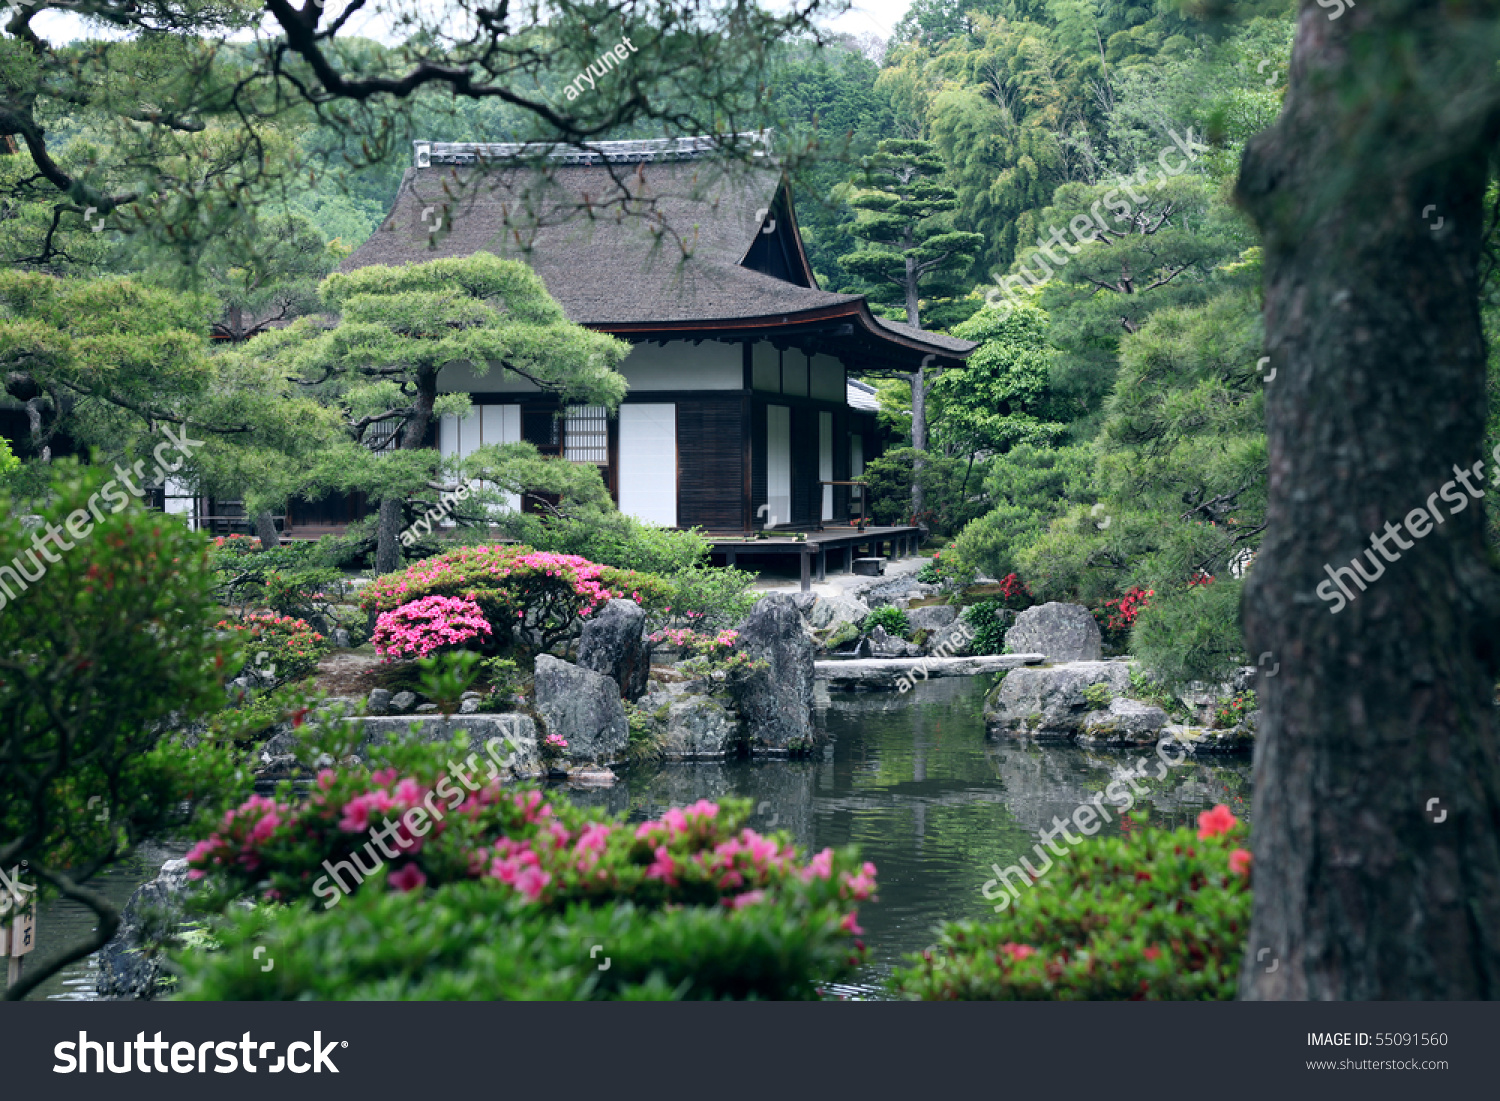 Japanese Landscape Architecture Japanese Landscape Garden Stock Photo 55091560 Shutterstock